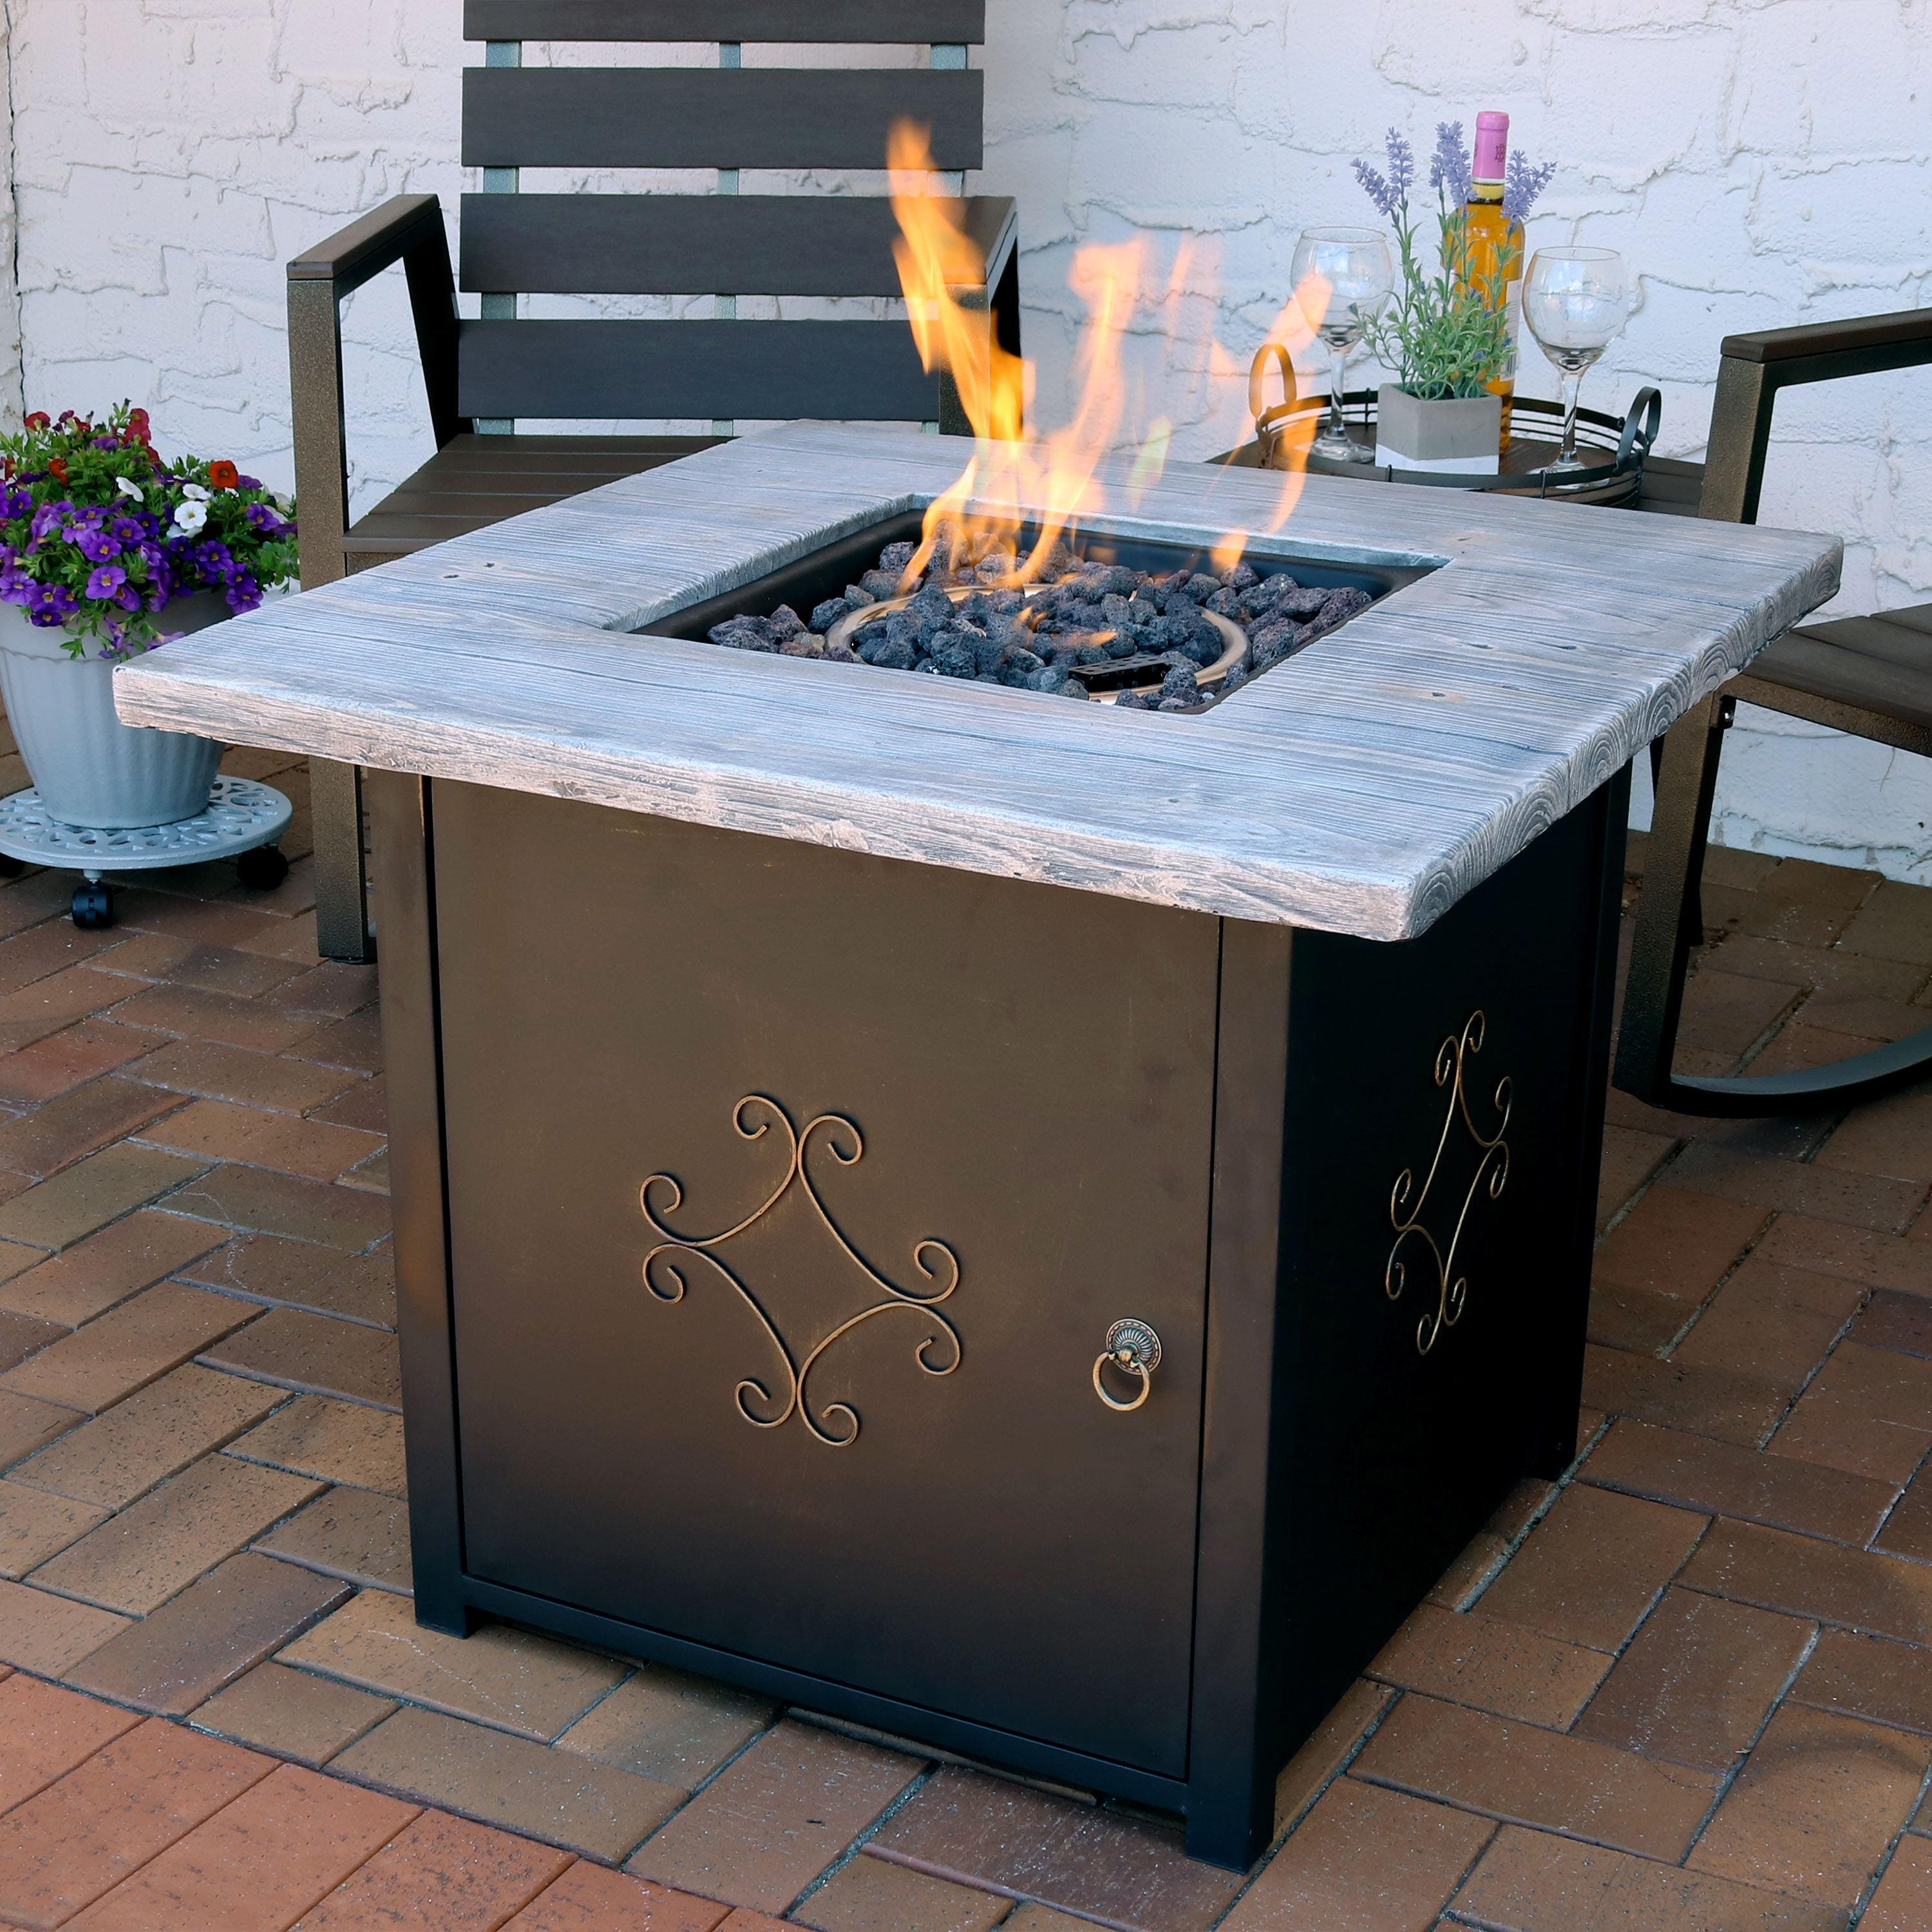 Outdoor Propane Fire Pit.Sunnydaze Square Outdoor Propane Gas Fire Pit Table With Lava Rocks 30 Inch